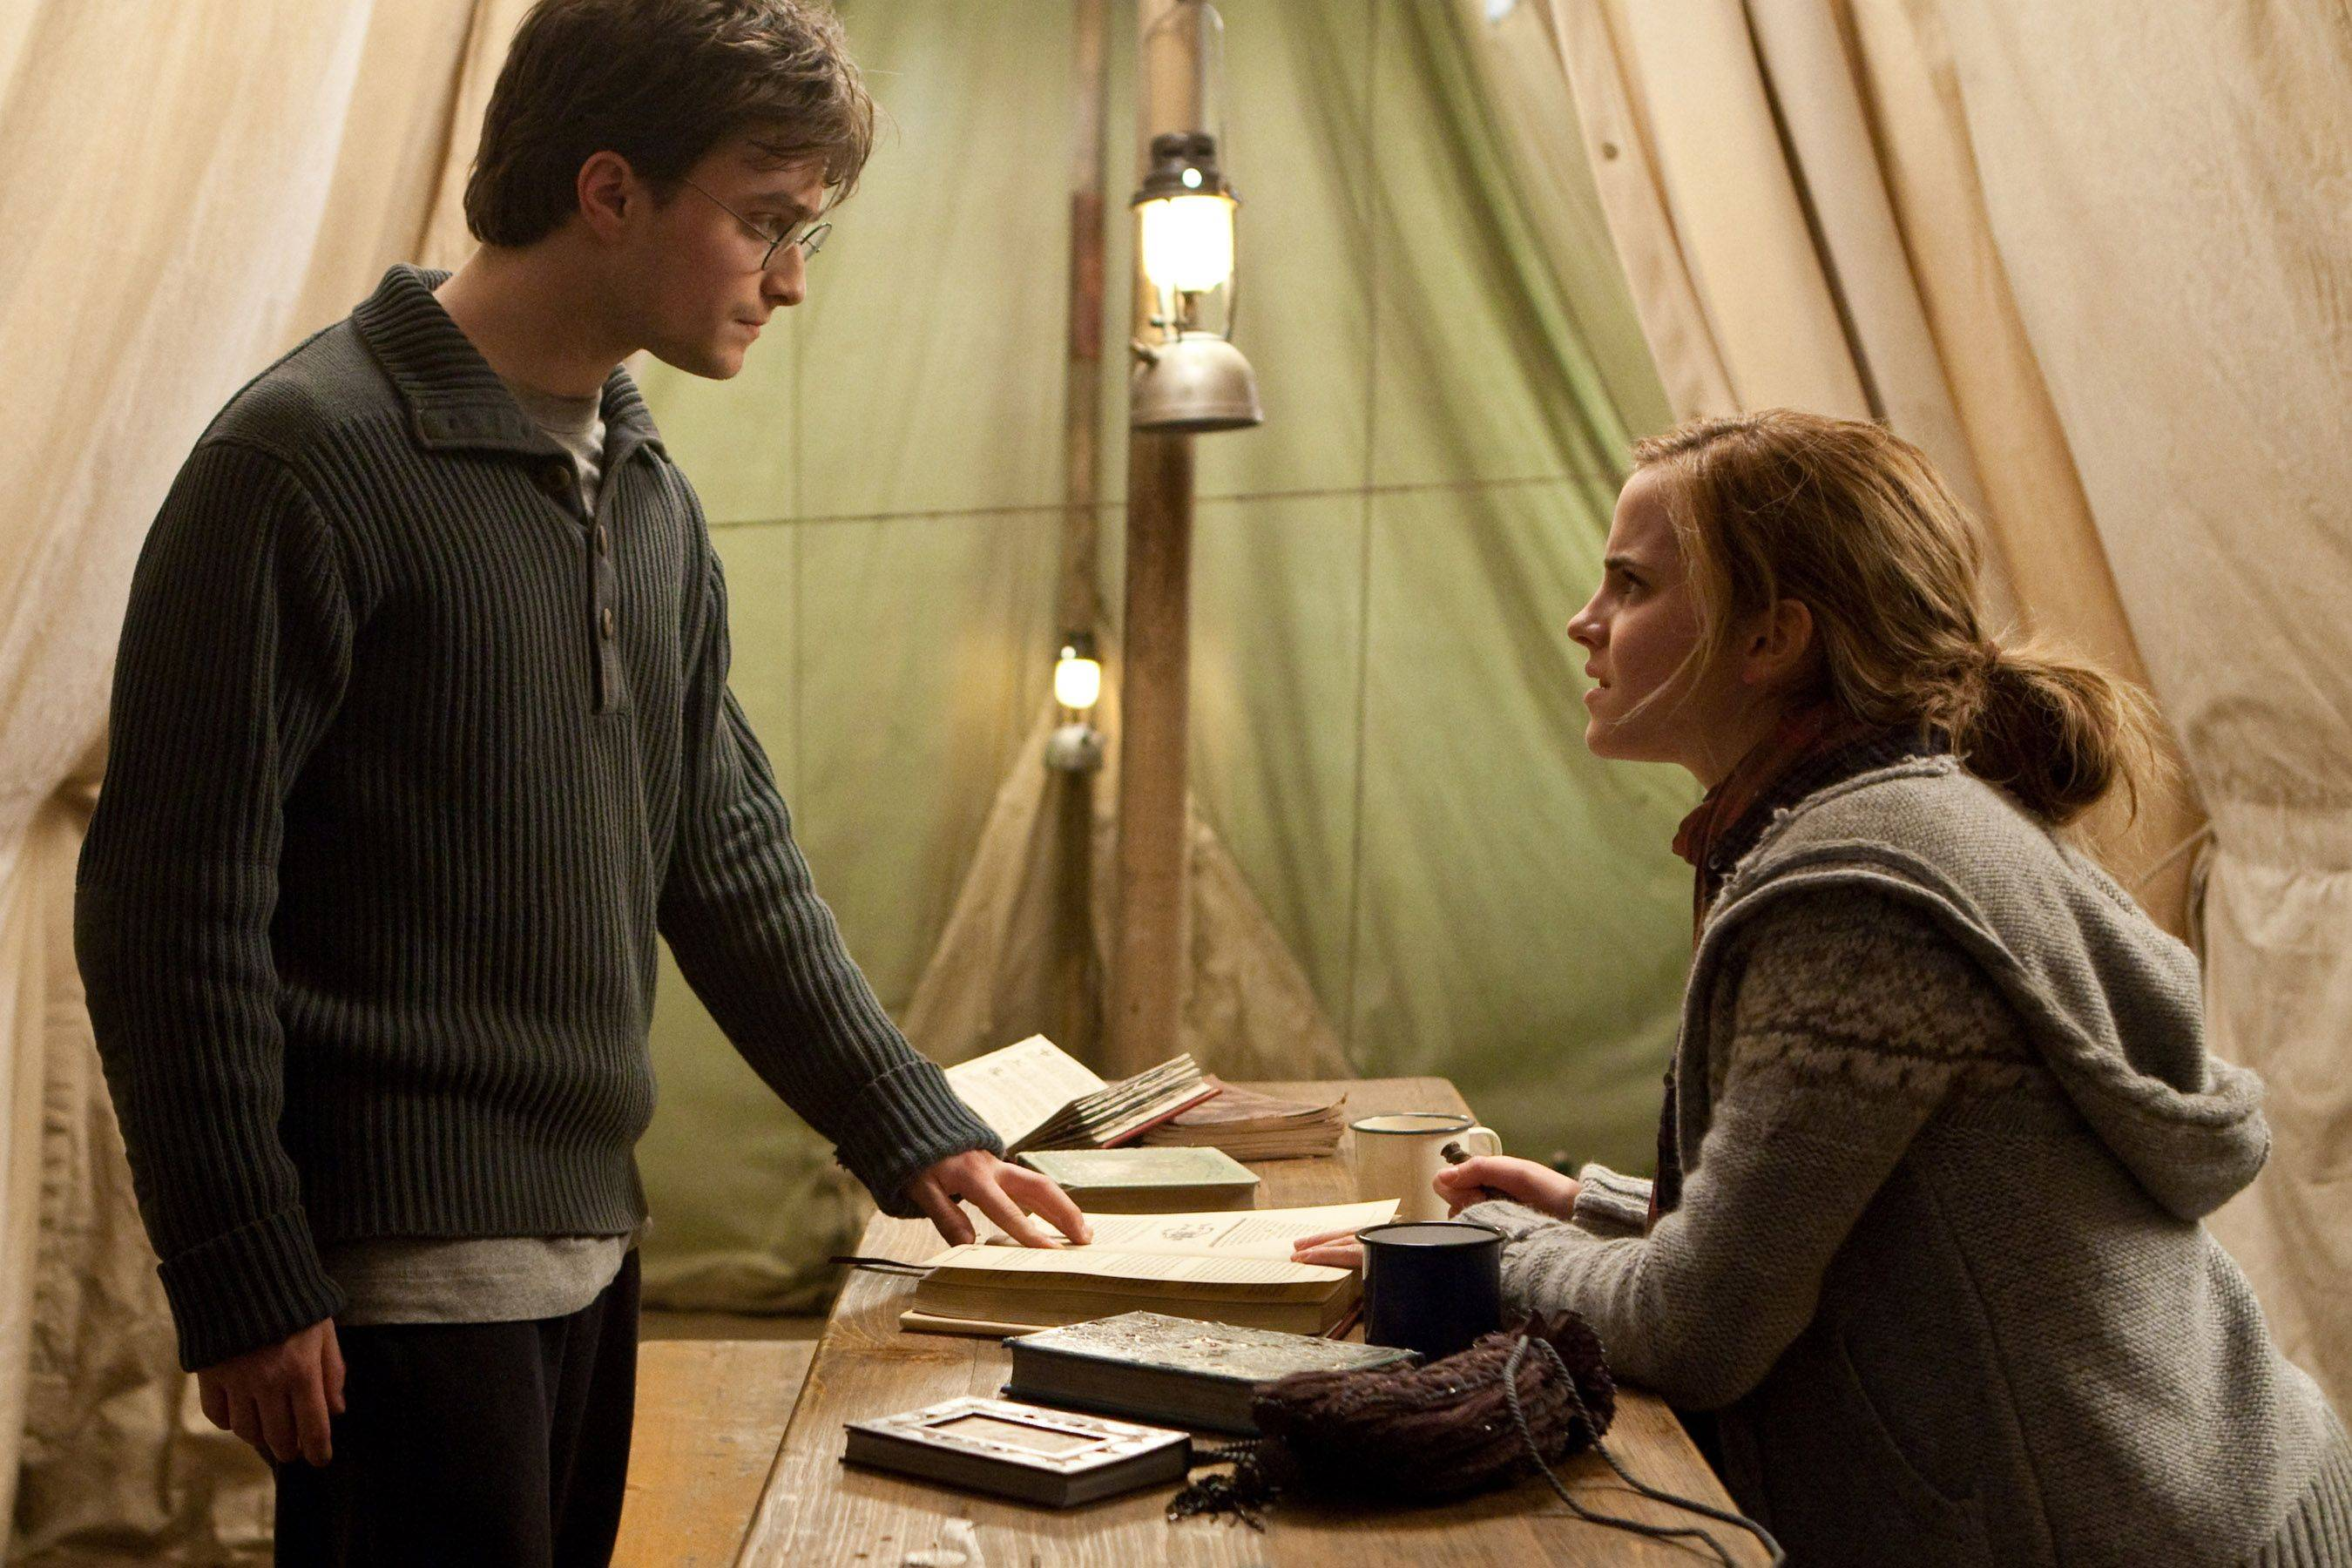 In hiding and living in a tent Harry (Daniel Radcliffe) and Hermione (  sc 1 st  Daily Herald & Gloomy u0027Deathly Hallowsu0027 sets the stage for Harry Potteru0027s final spell